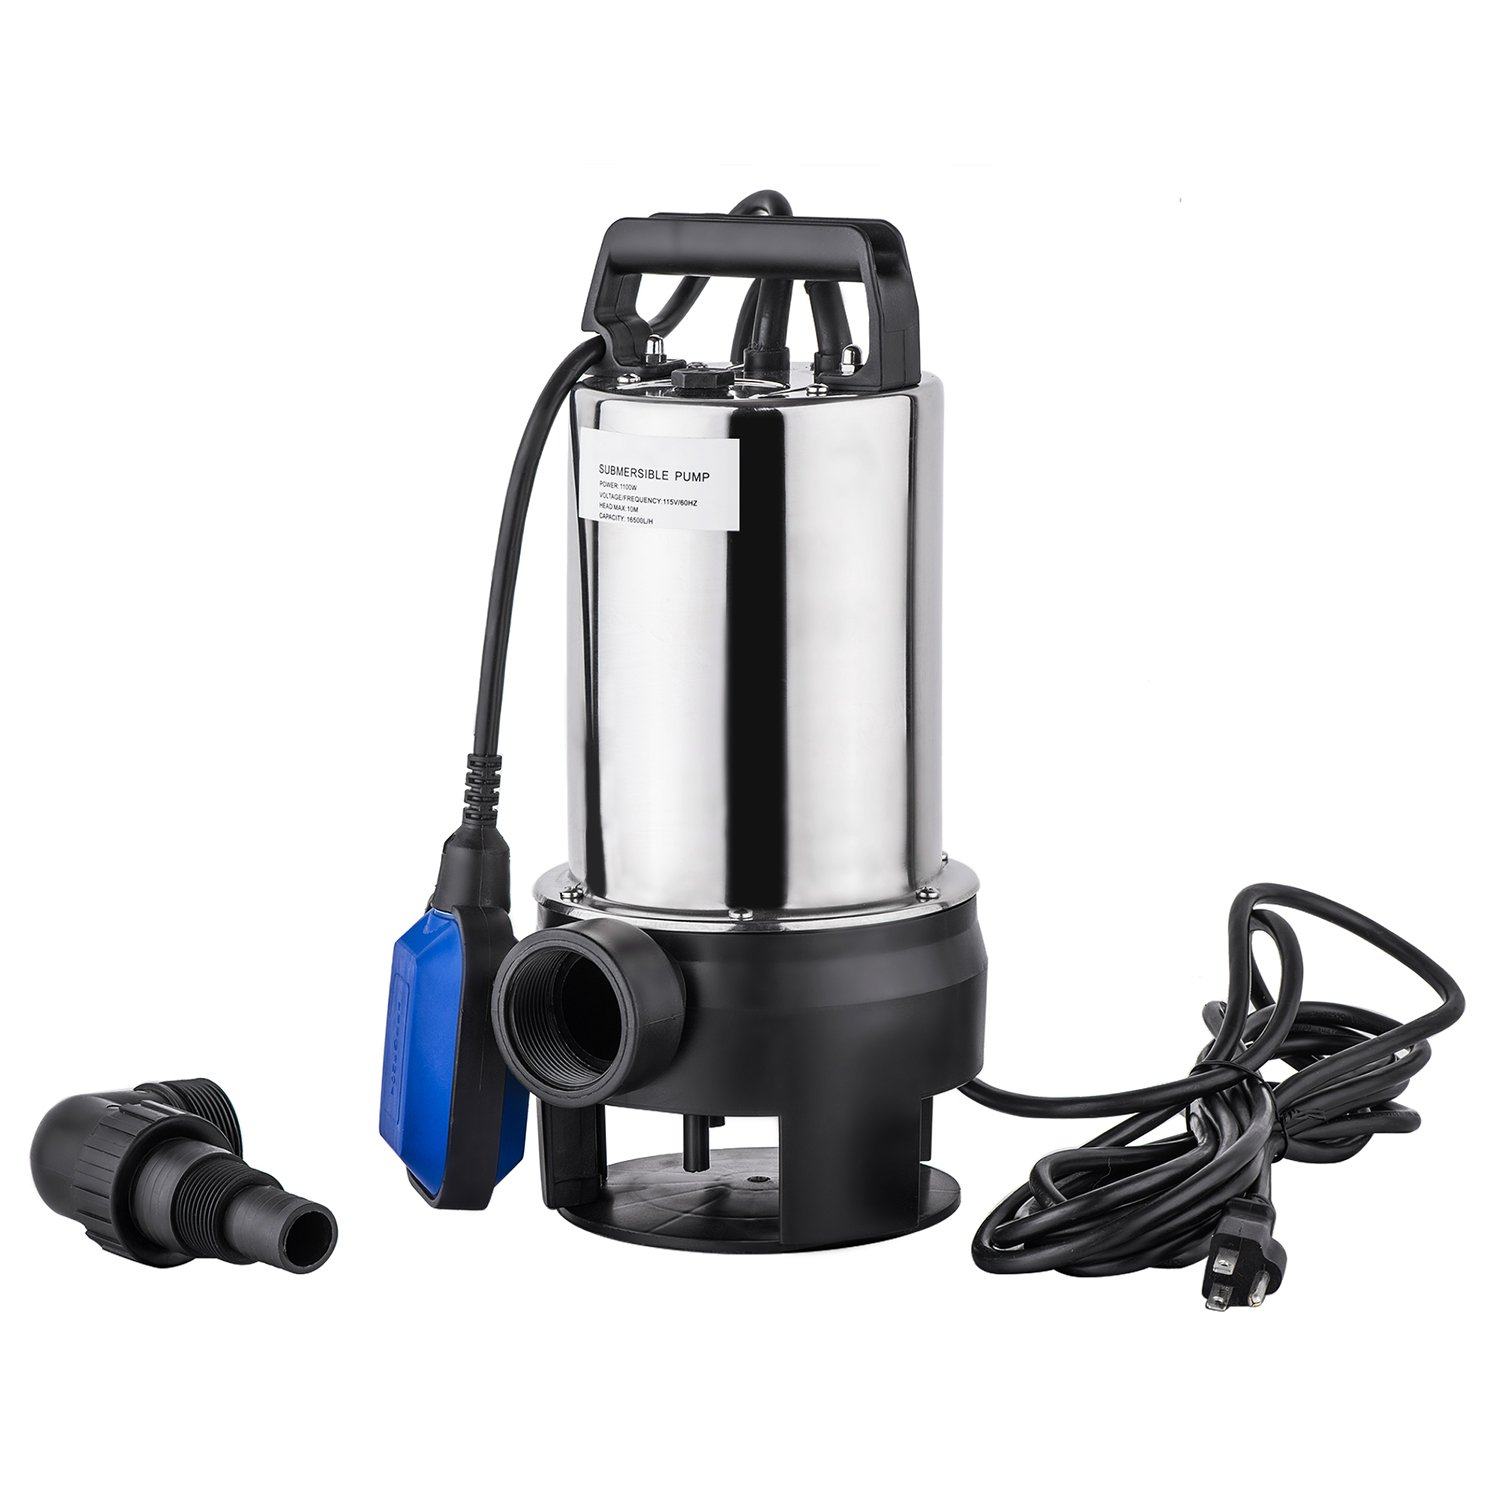 1.5 HP Stainless Steel Submersible Pump, Sump Pump, Dirty Clean Water Pump w/15ft Cable and Float Switch [US STOCK] (1.5 HP)